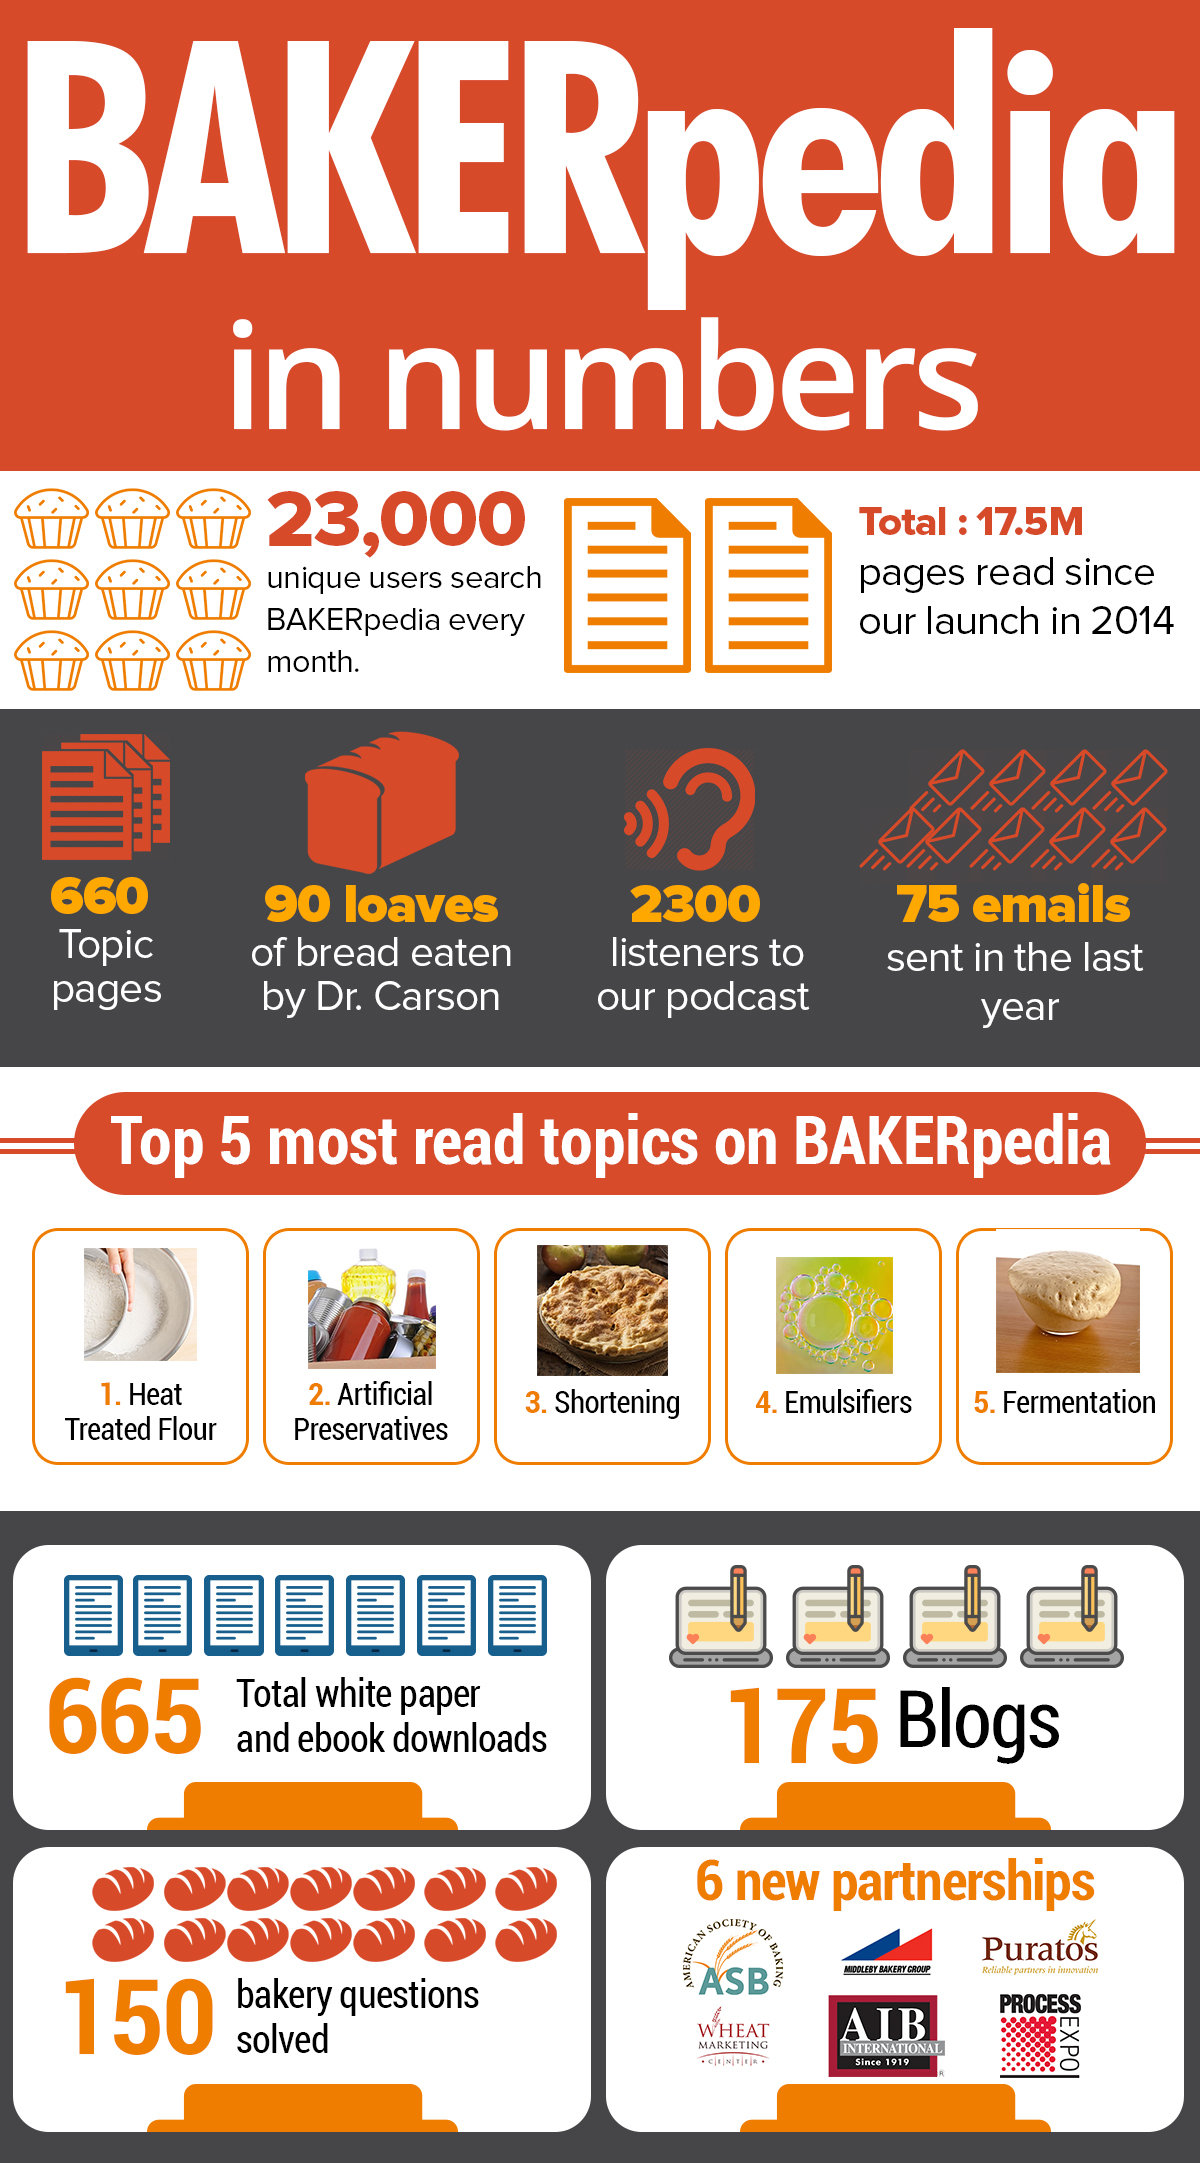 BAKERpedia by the numbers